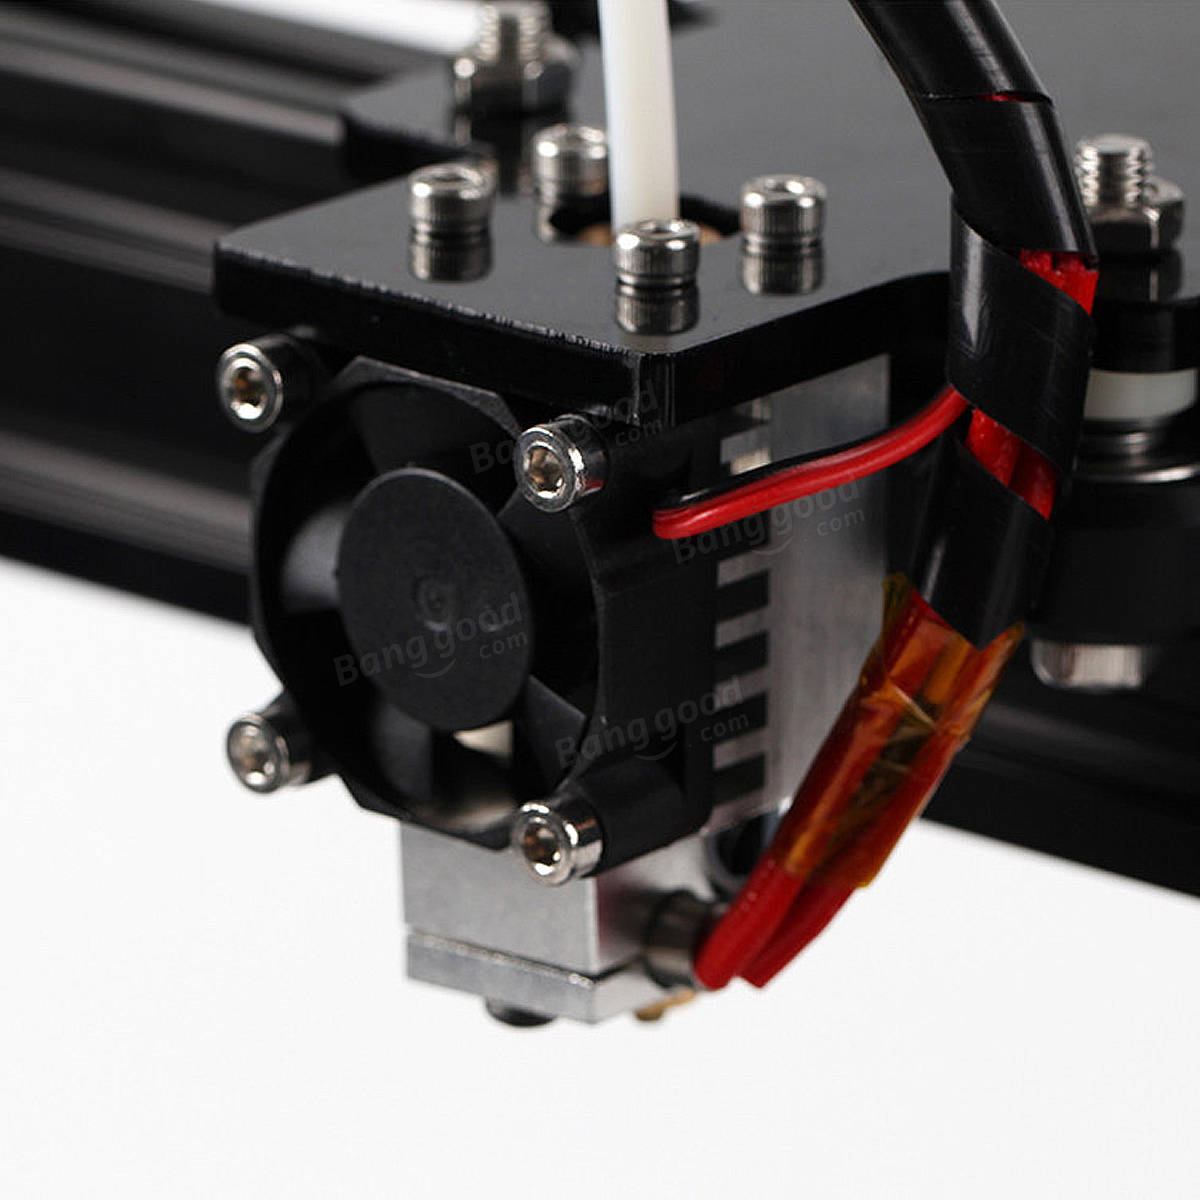 configuration guide for the tevo tarantula 3d printe